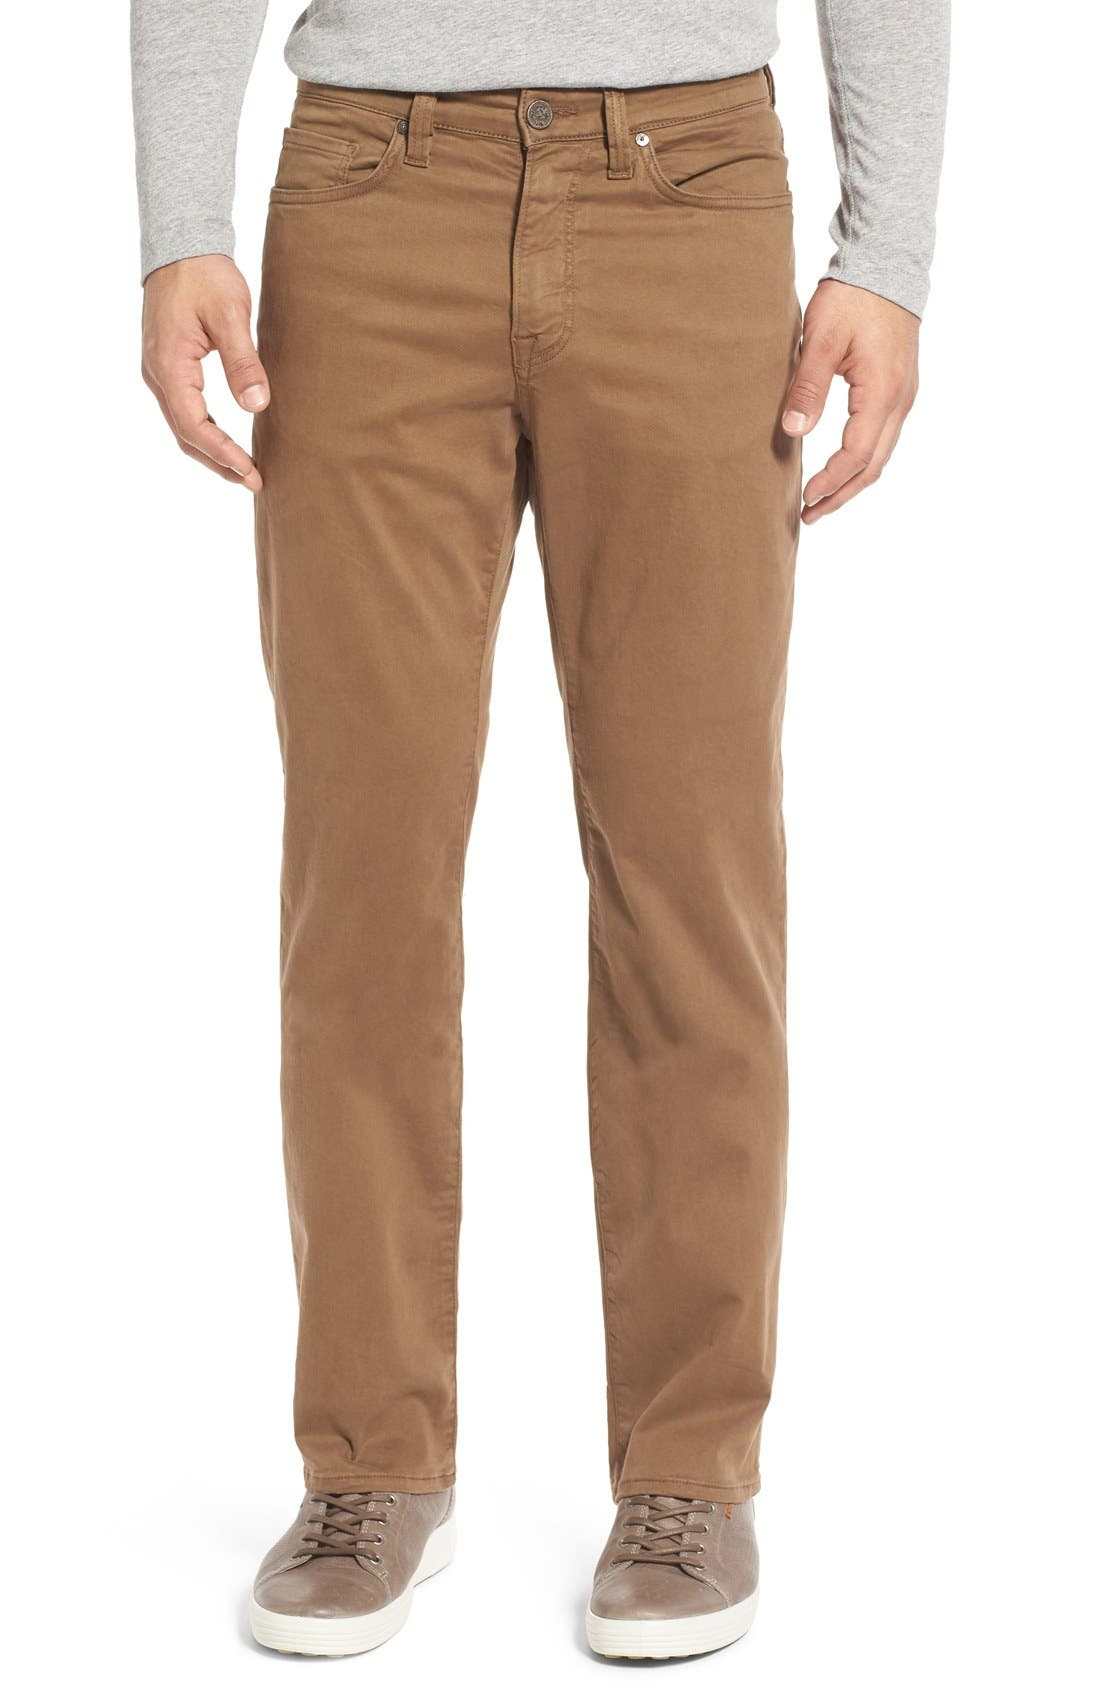 'Charisma' Relaxed Fit Jeans,                             Main thumbnail 1, color,